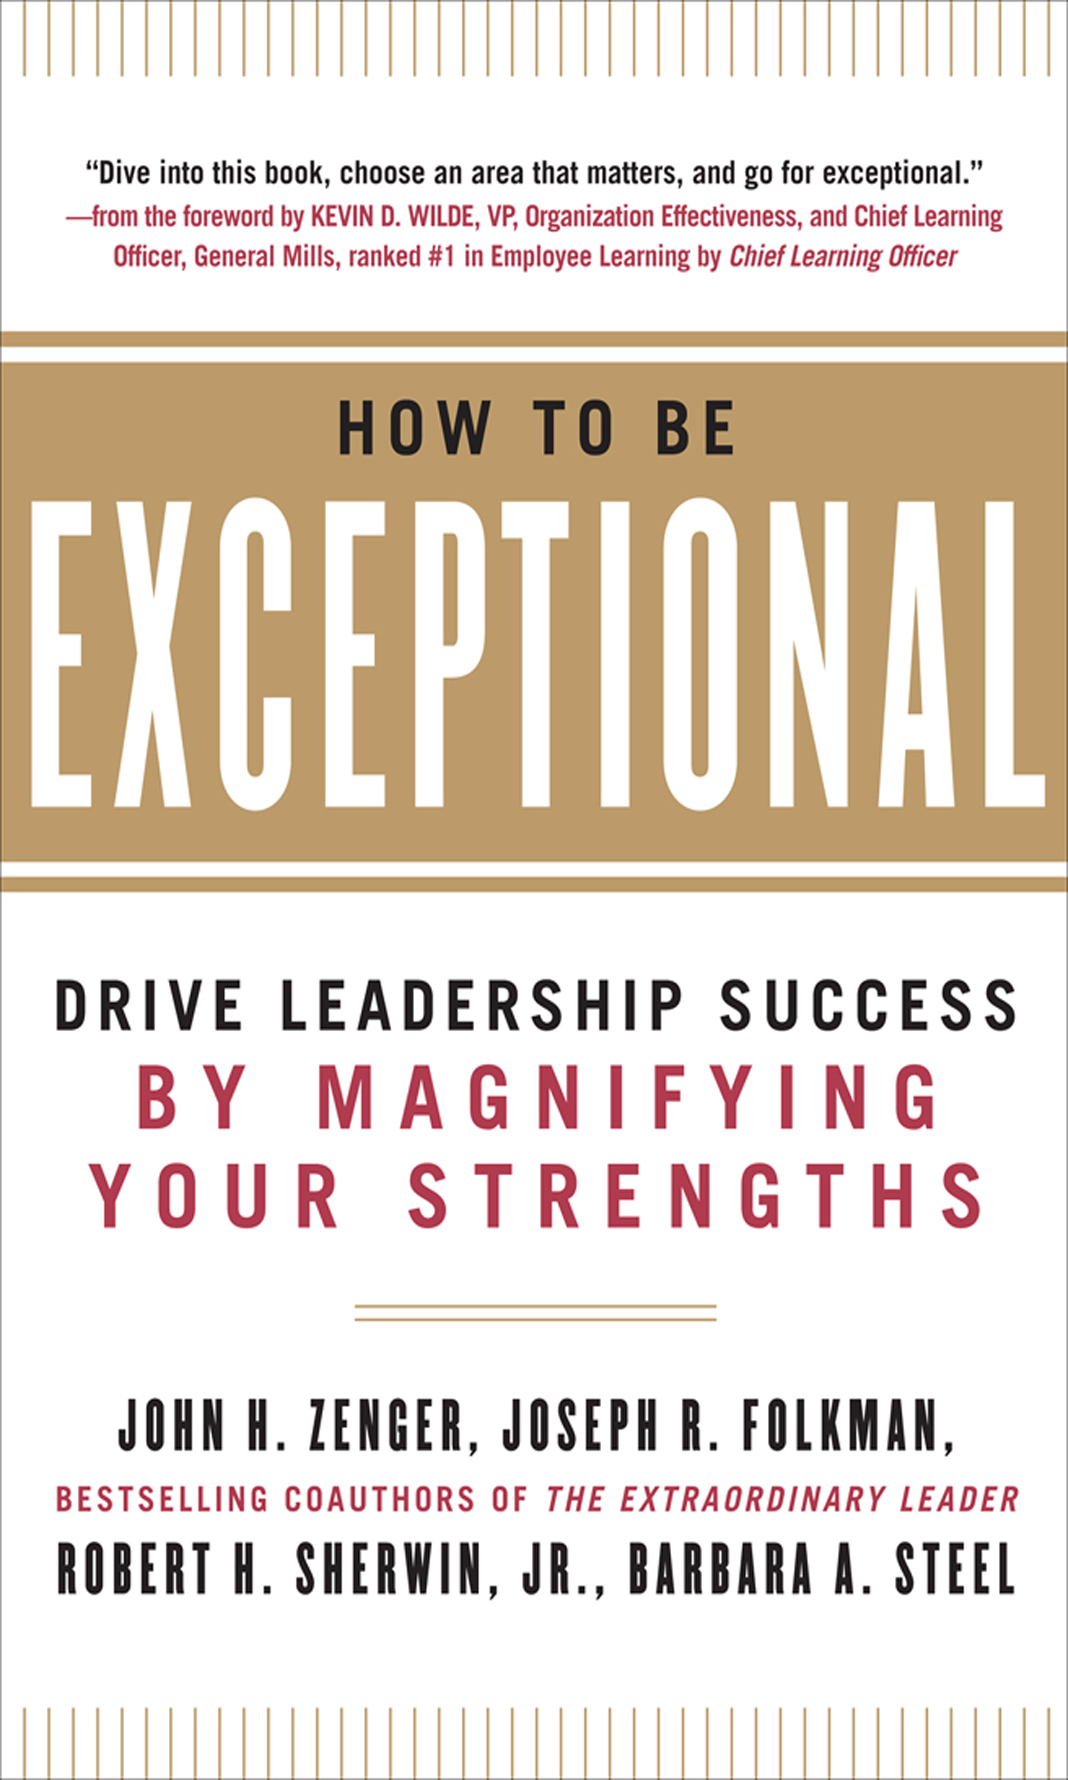 How to Be Exceptional:  Drive Leadership Success By Magnifying Your Strengths By:  Barbara Steel, Joseph Folkman, Jr. Robert H. Sherwin,John Zenger